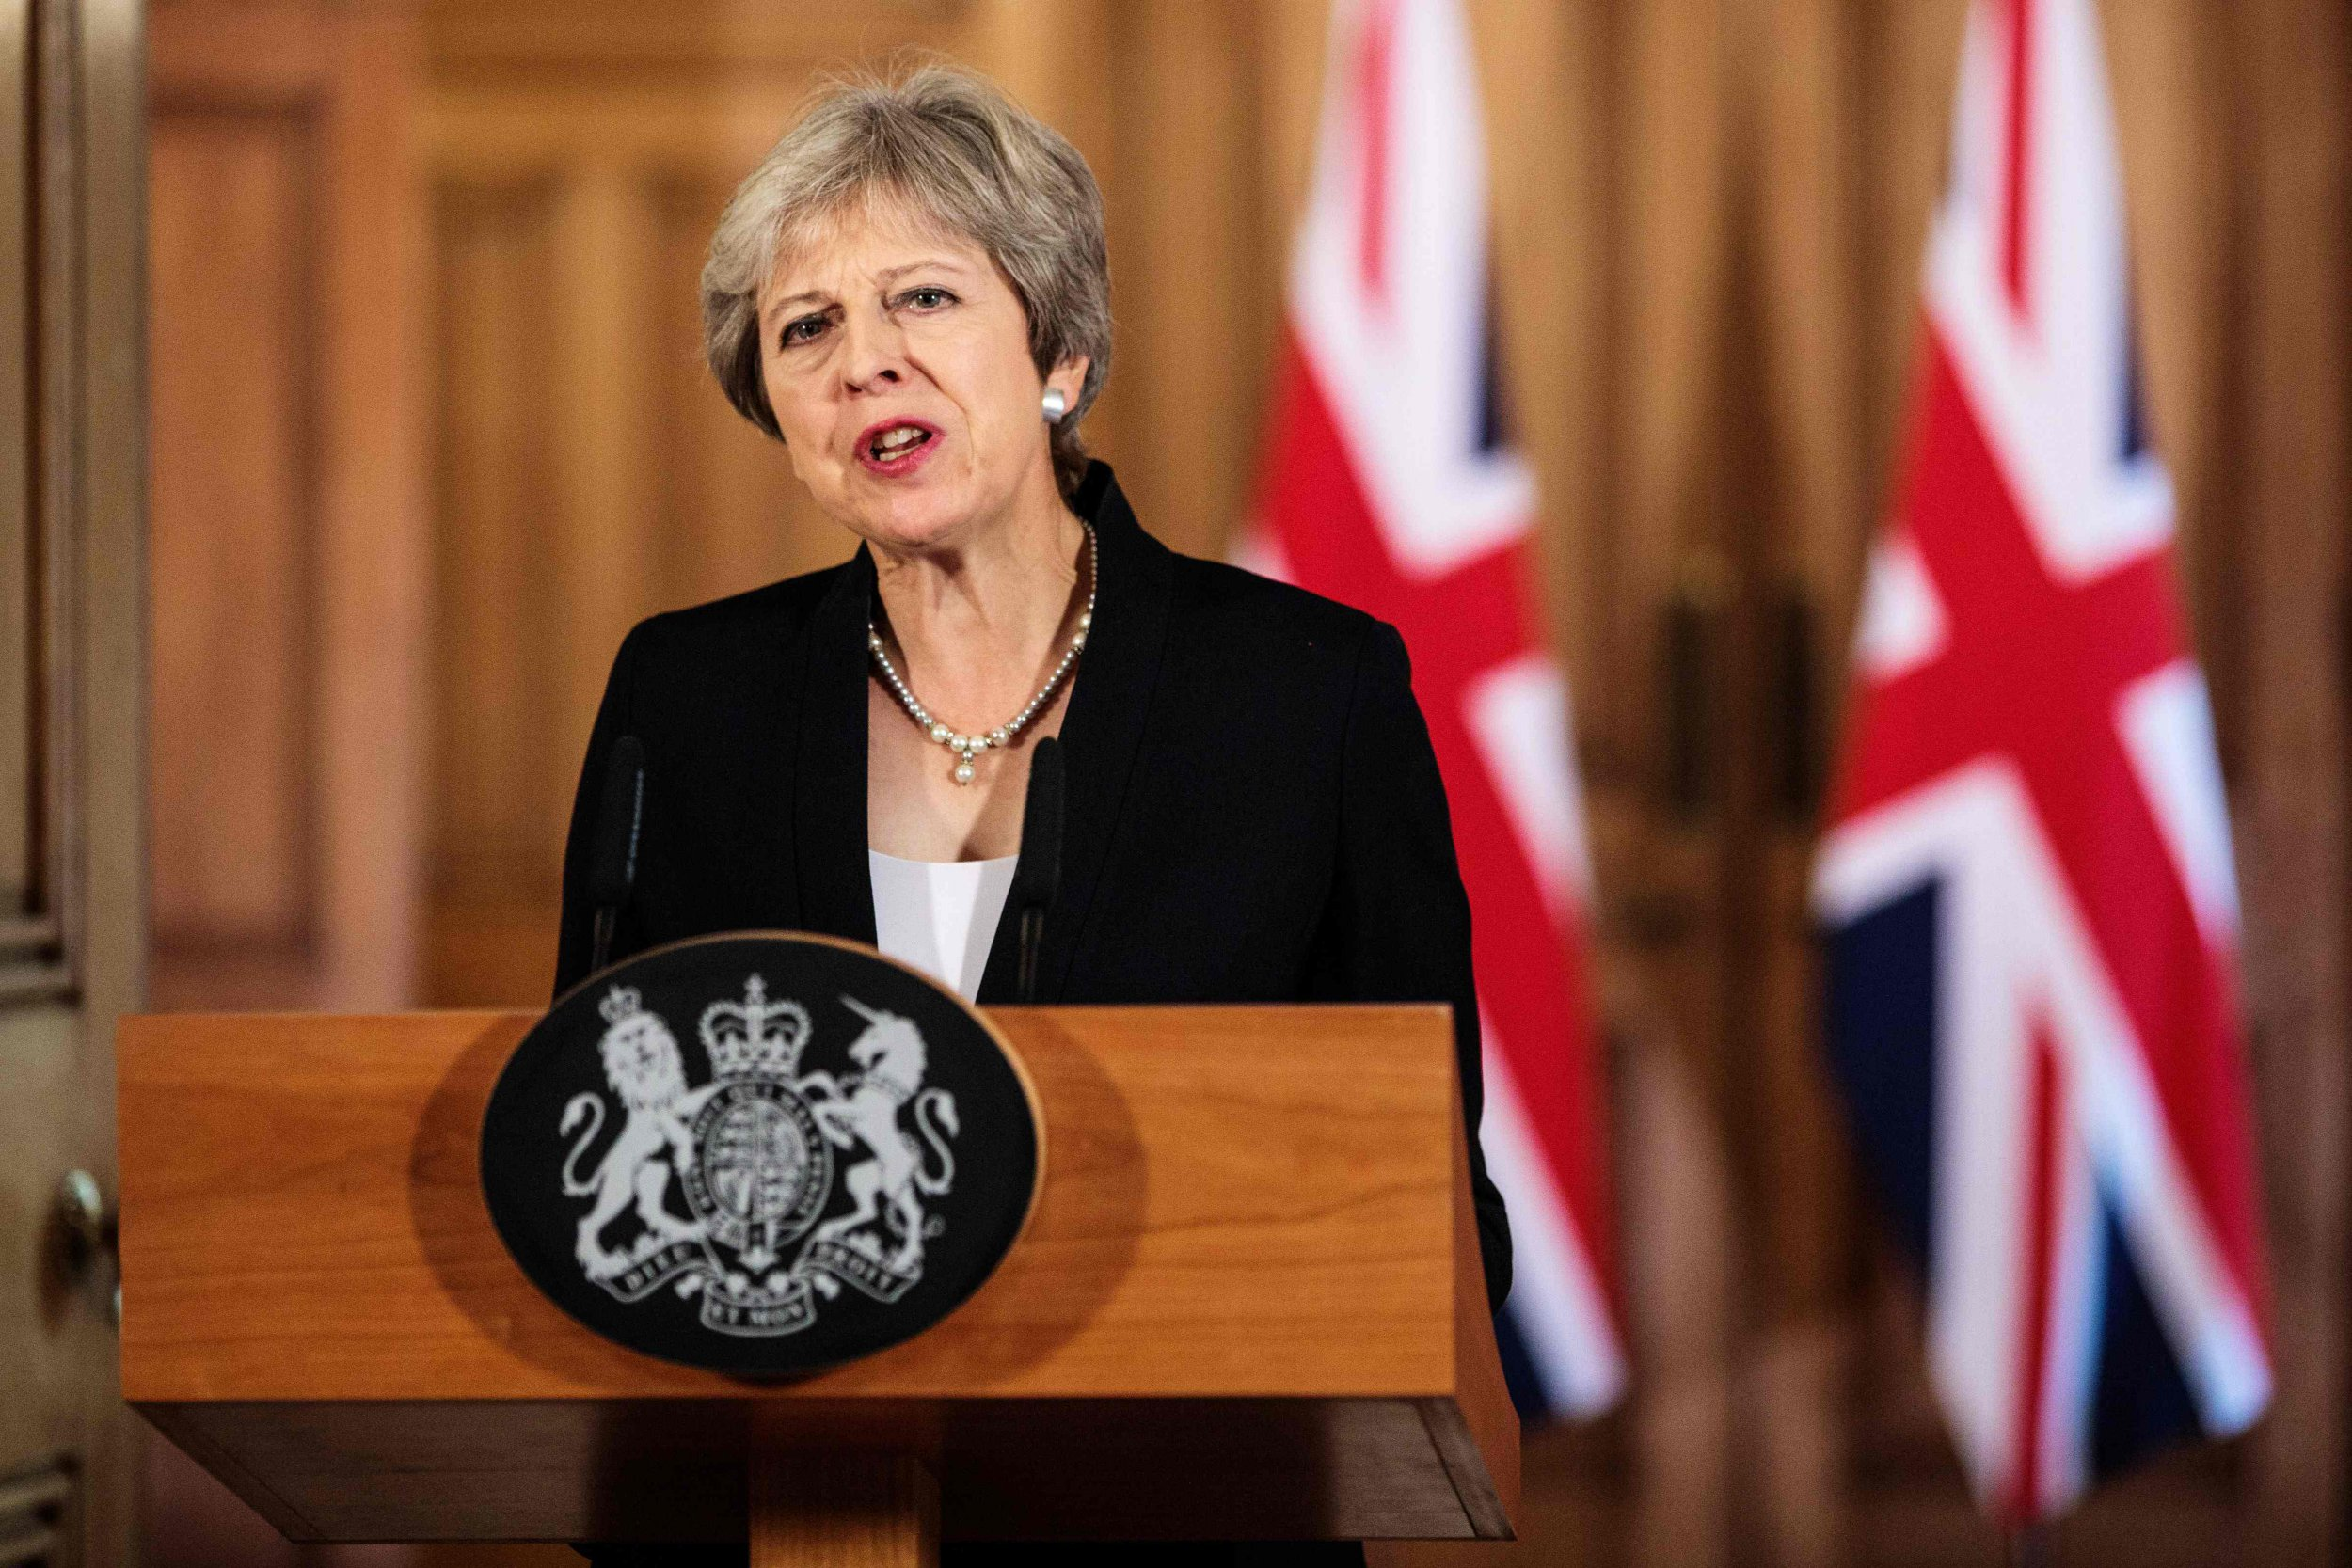 """Britain's Prime Minister Theresa May makes a statement on the Brexit negotiations following a European Union summit in Salzburg, at no 10 Downing Street, central London on September 21, 2018. - British Prime Minister Theresa May said Friday the European Union's abrupt dismissal of her Brexit plan was not acceptable, as she conceded talks were """"at an impasse"""". (Photo by Jack Taylor / POOL / Getty Images)JACK TAYLOR/AFP/Getty Images"""